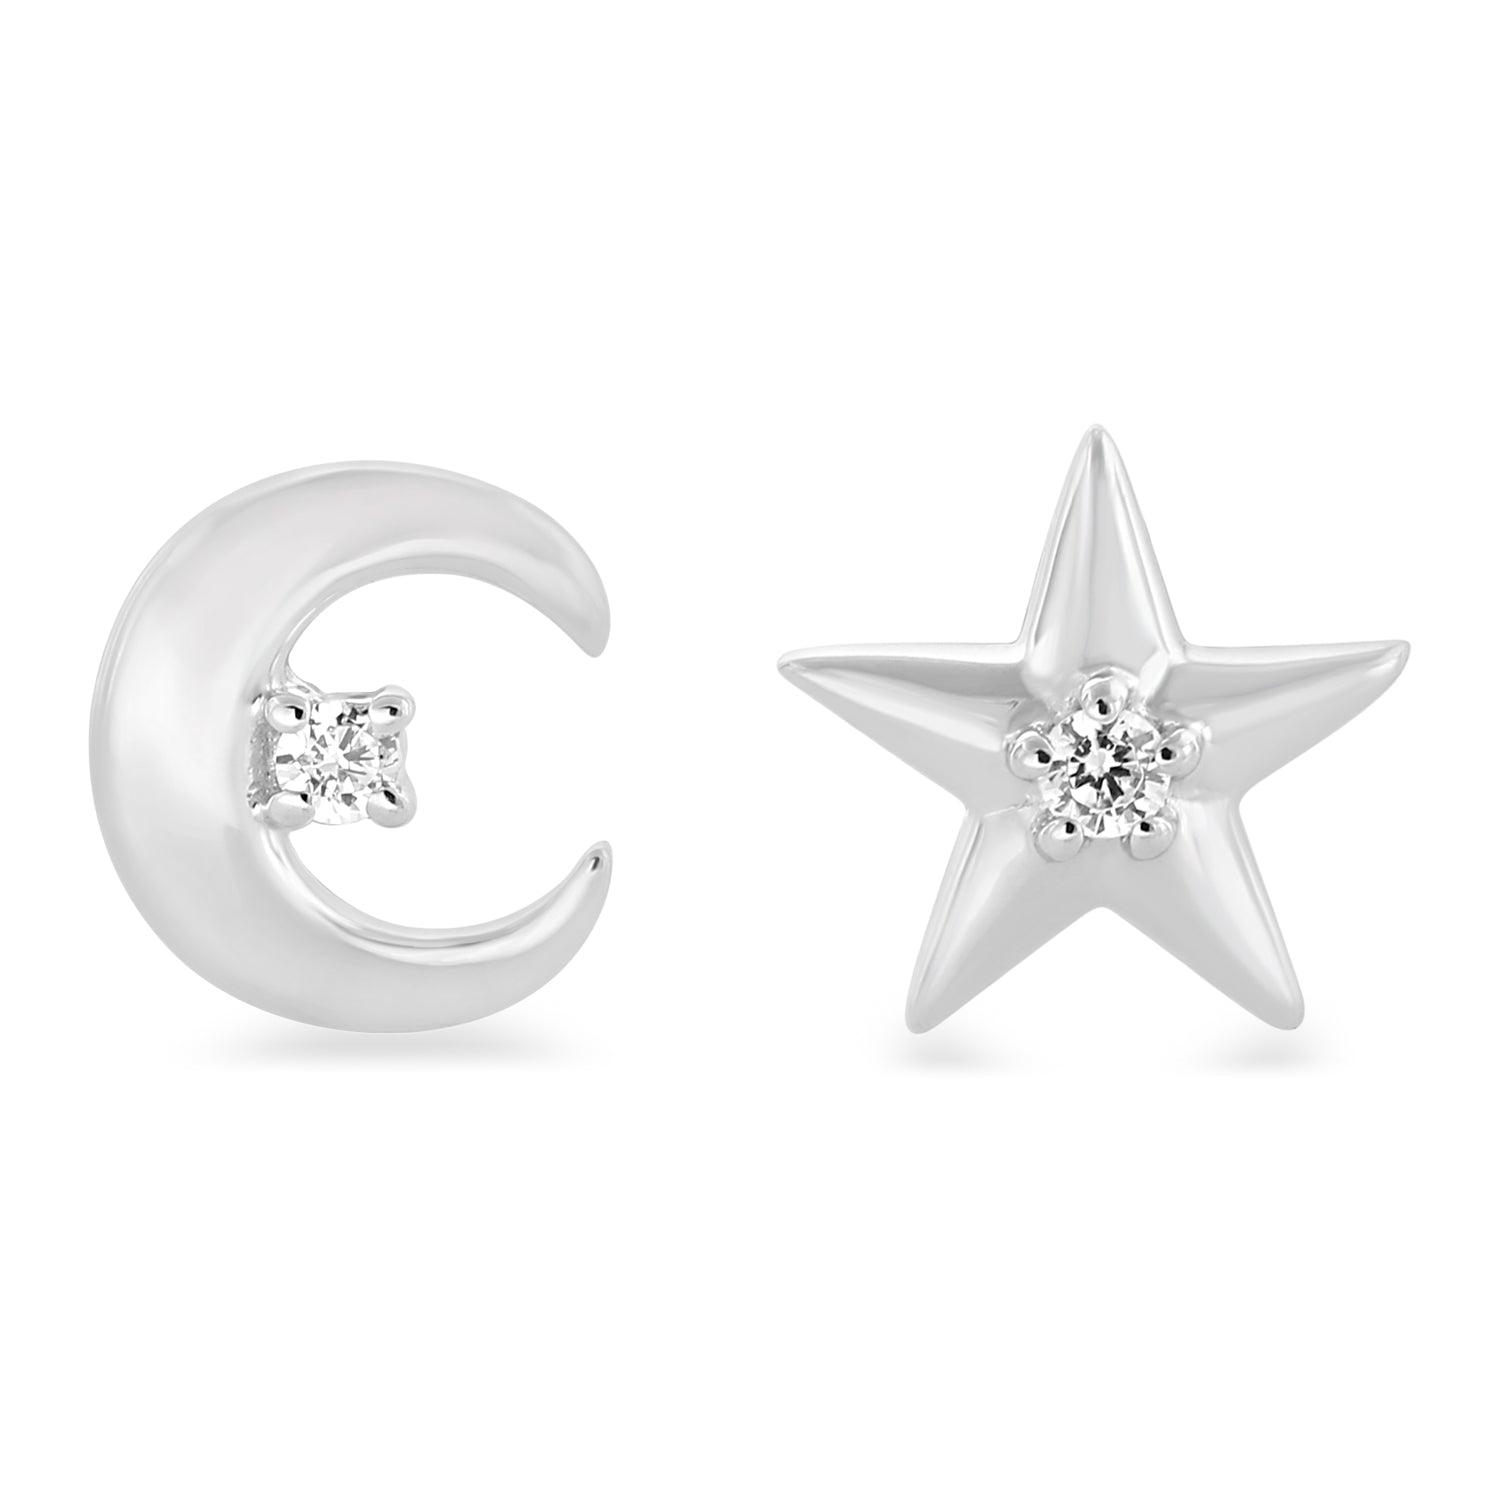 enchanted_disney-jasmine_star_and_moon_earrings-sterling_silver_1/20CTTW_1